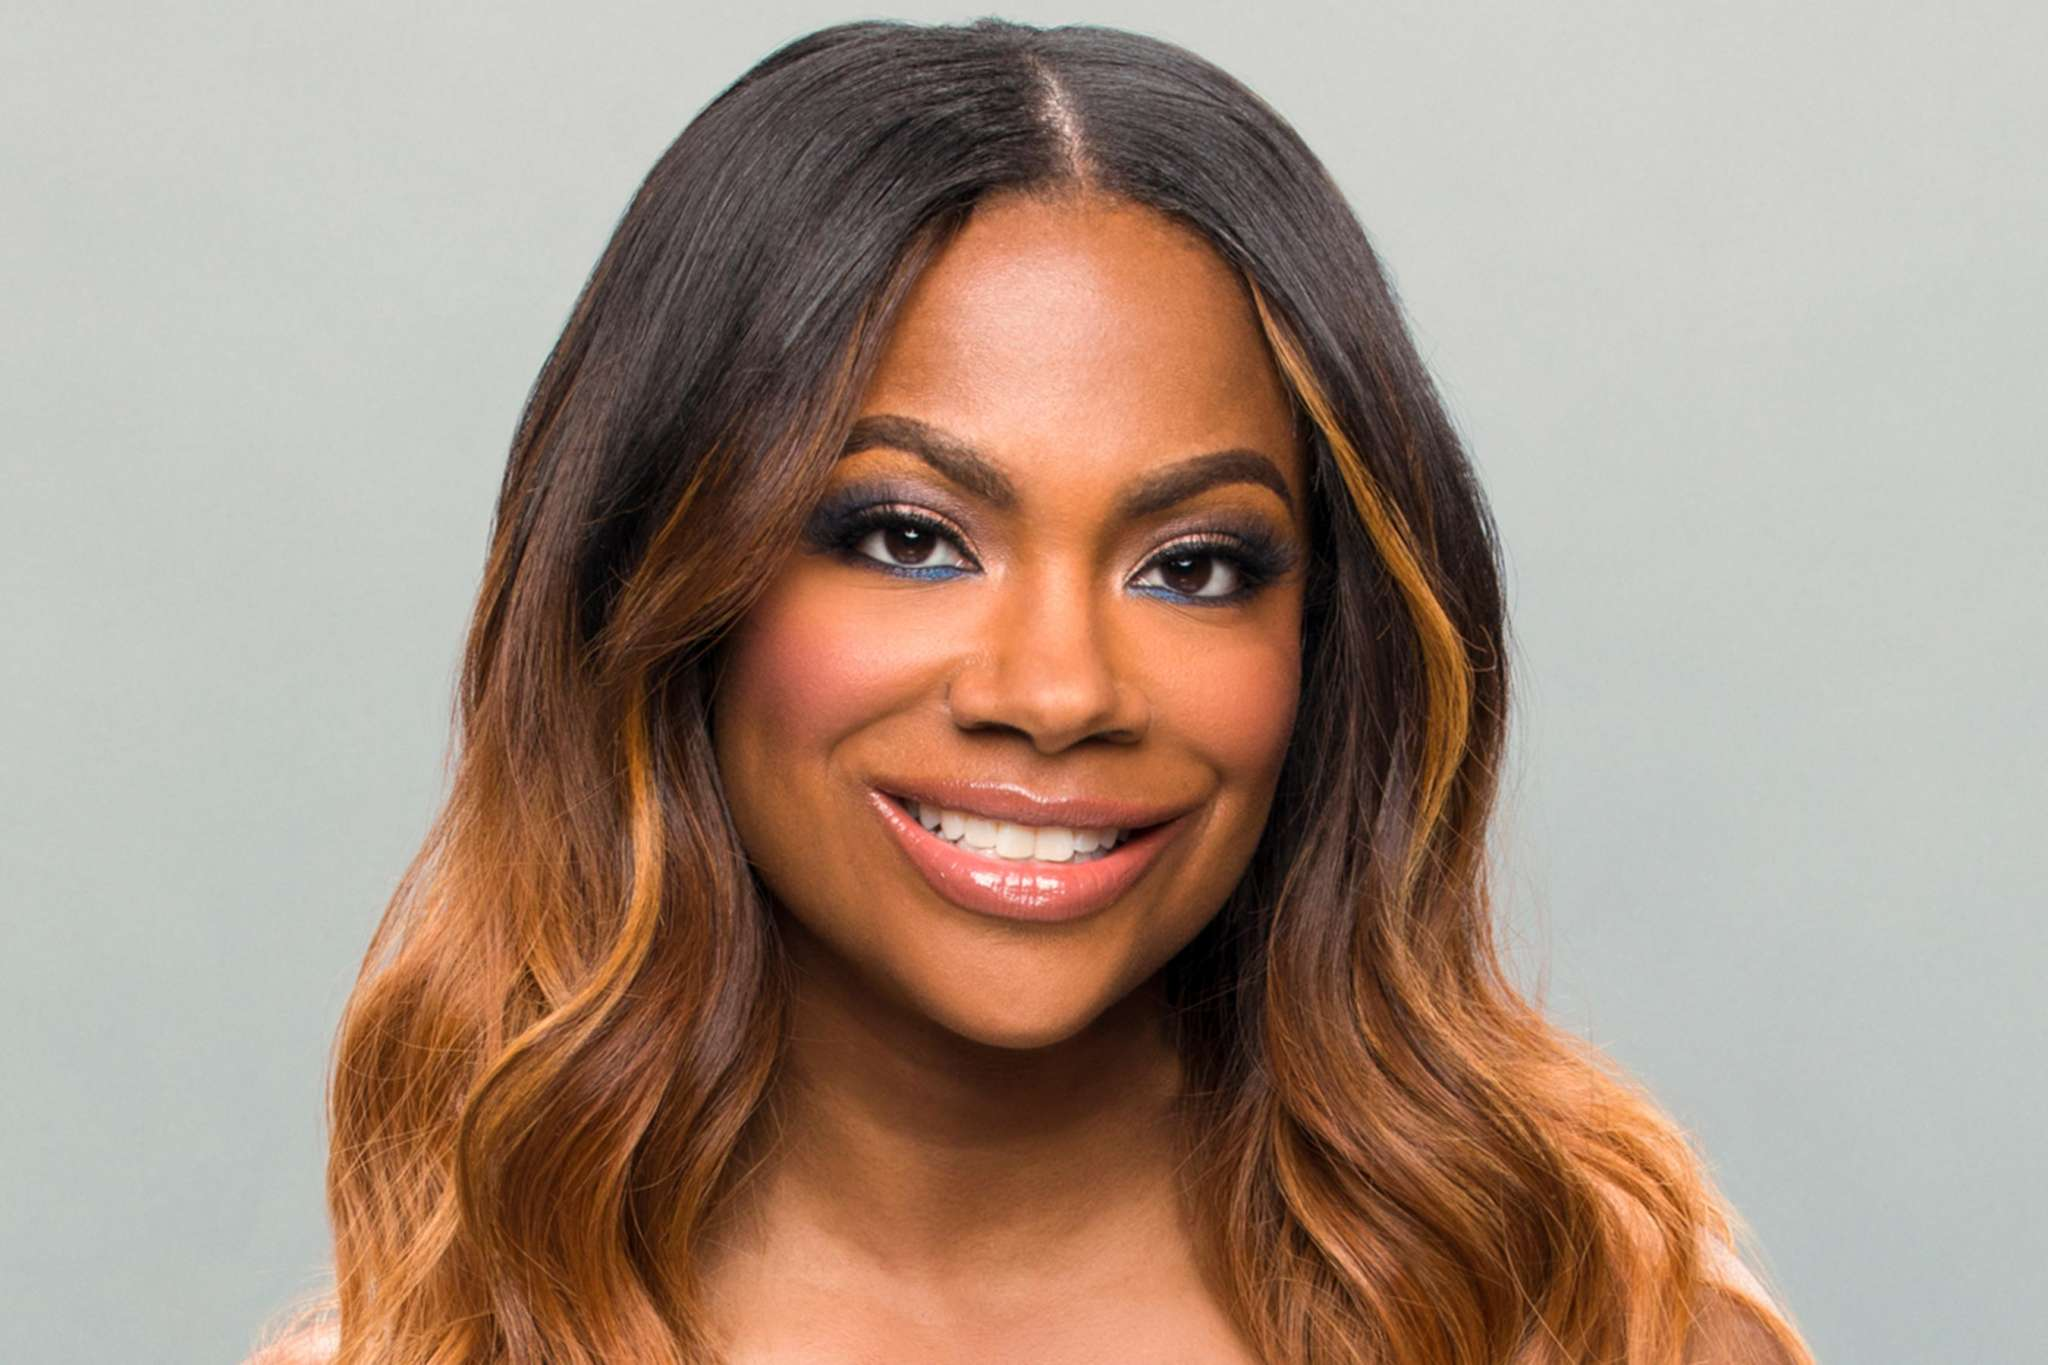 Kandi Burruss' Fans Believe She Needs More Rewards And Recognition